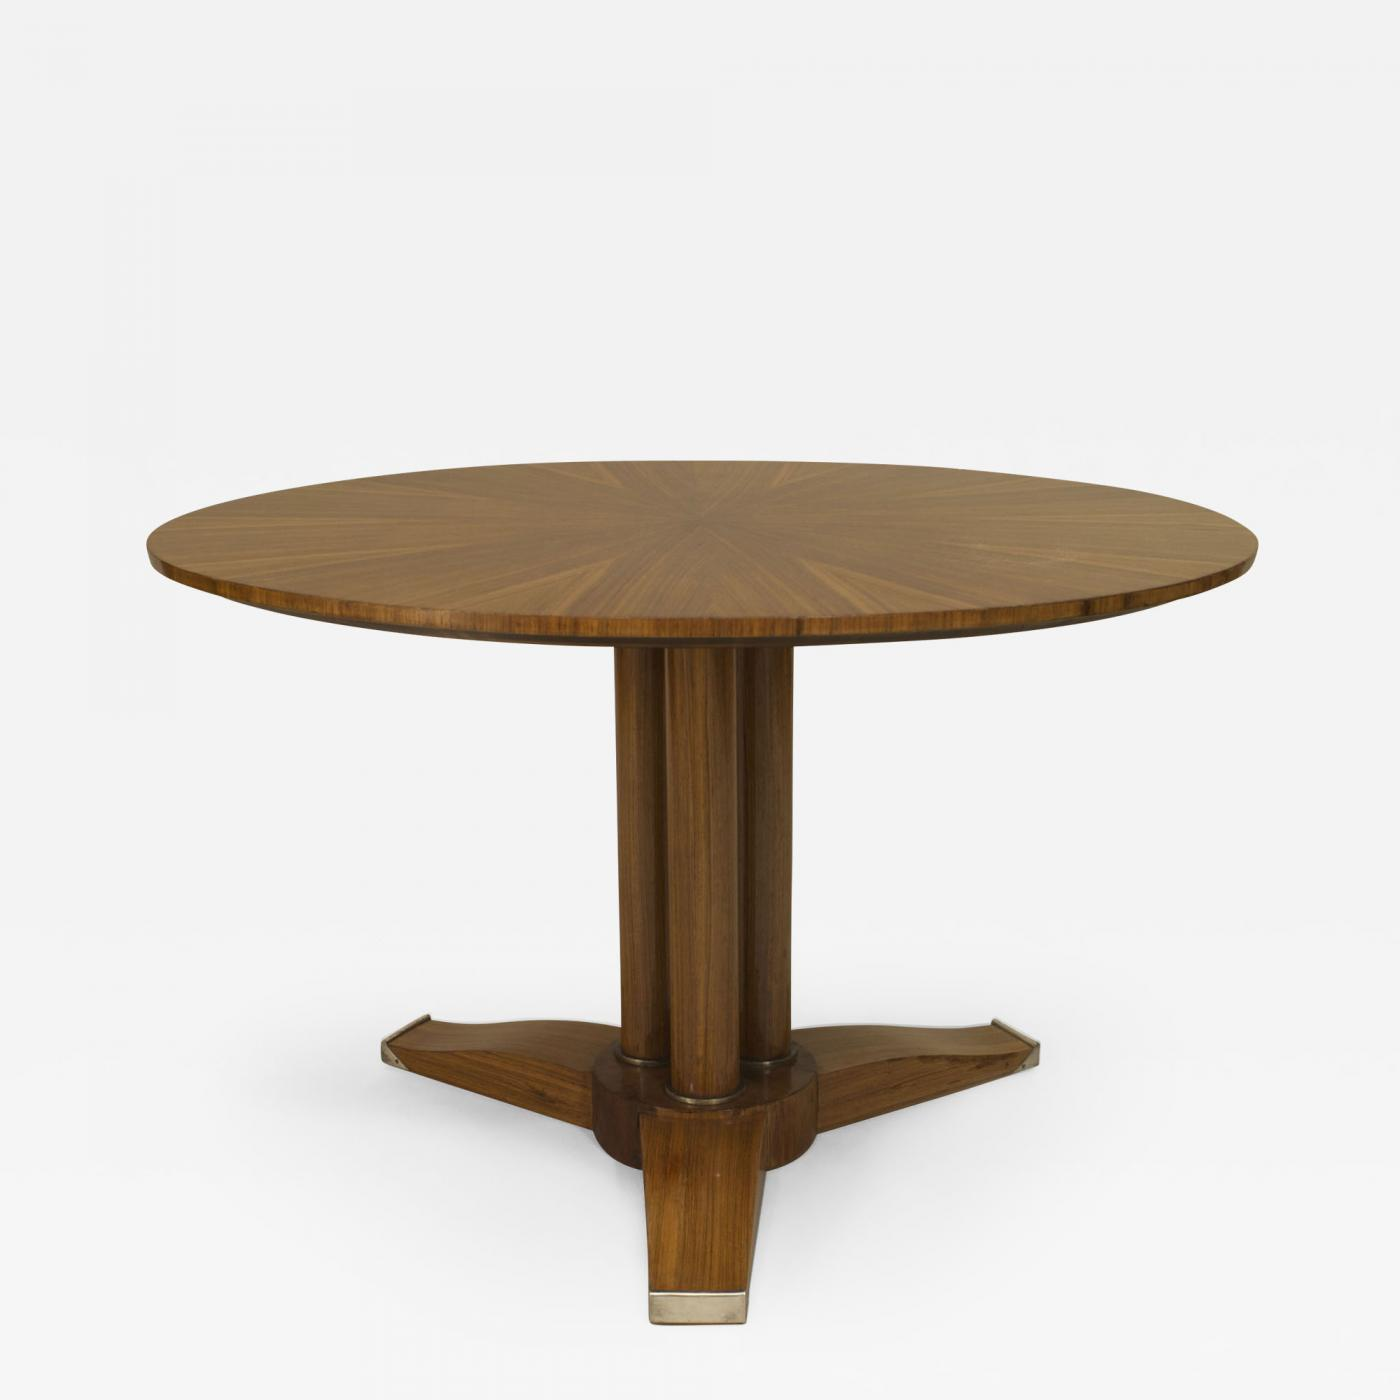 Charmant Listings / Furniture / Tables / Coffee Tables